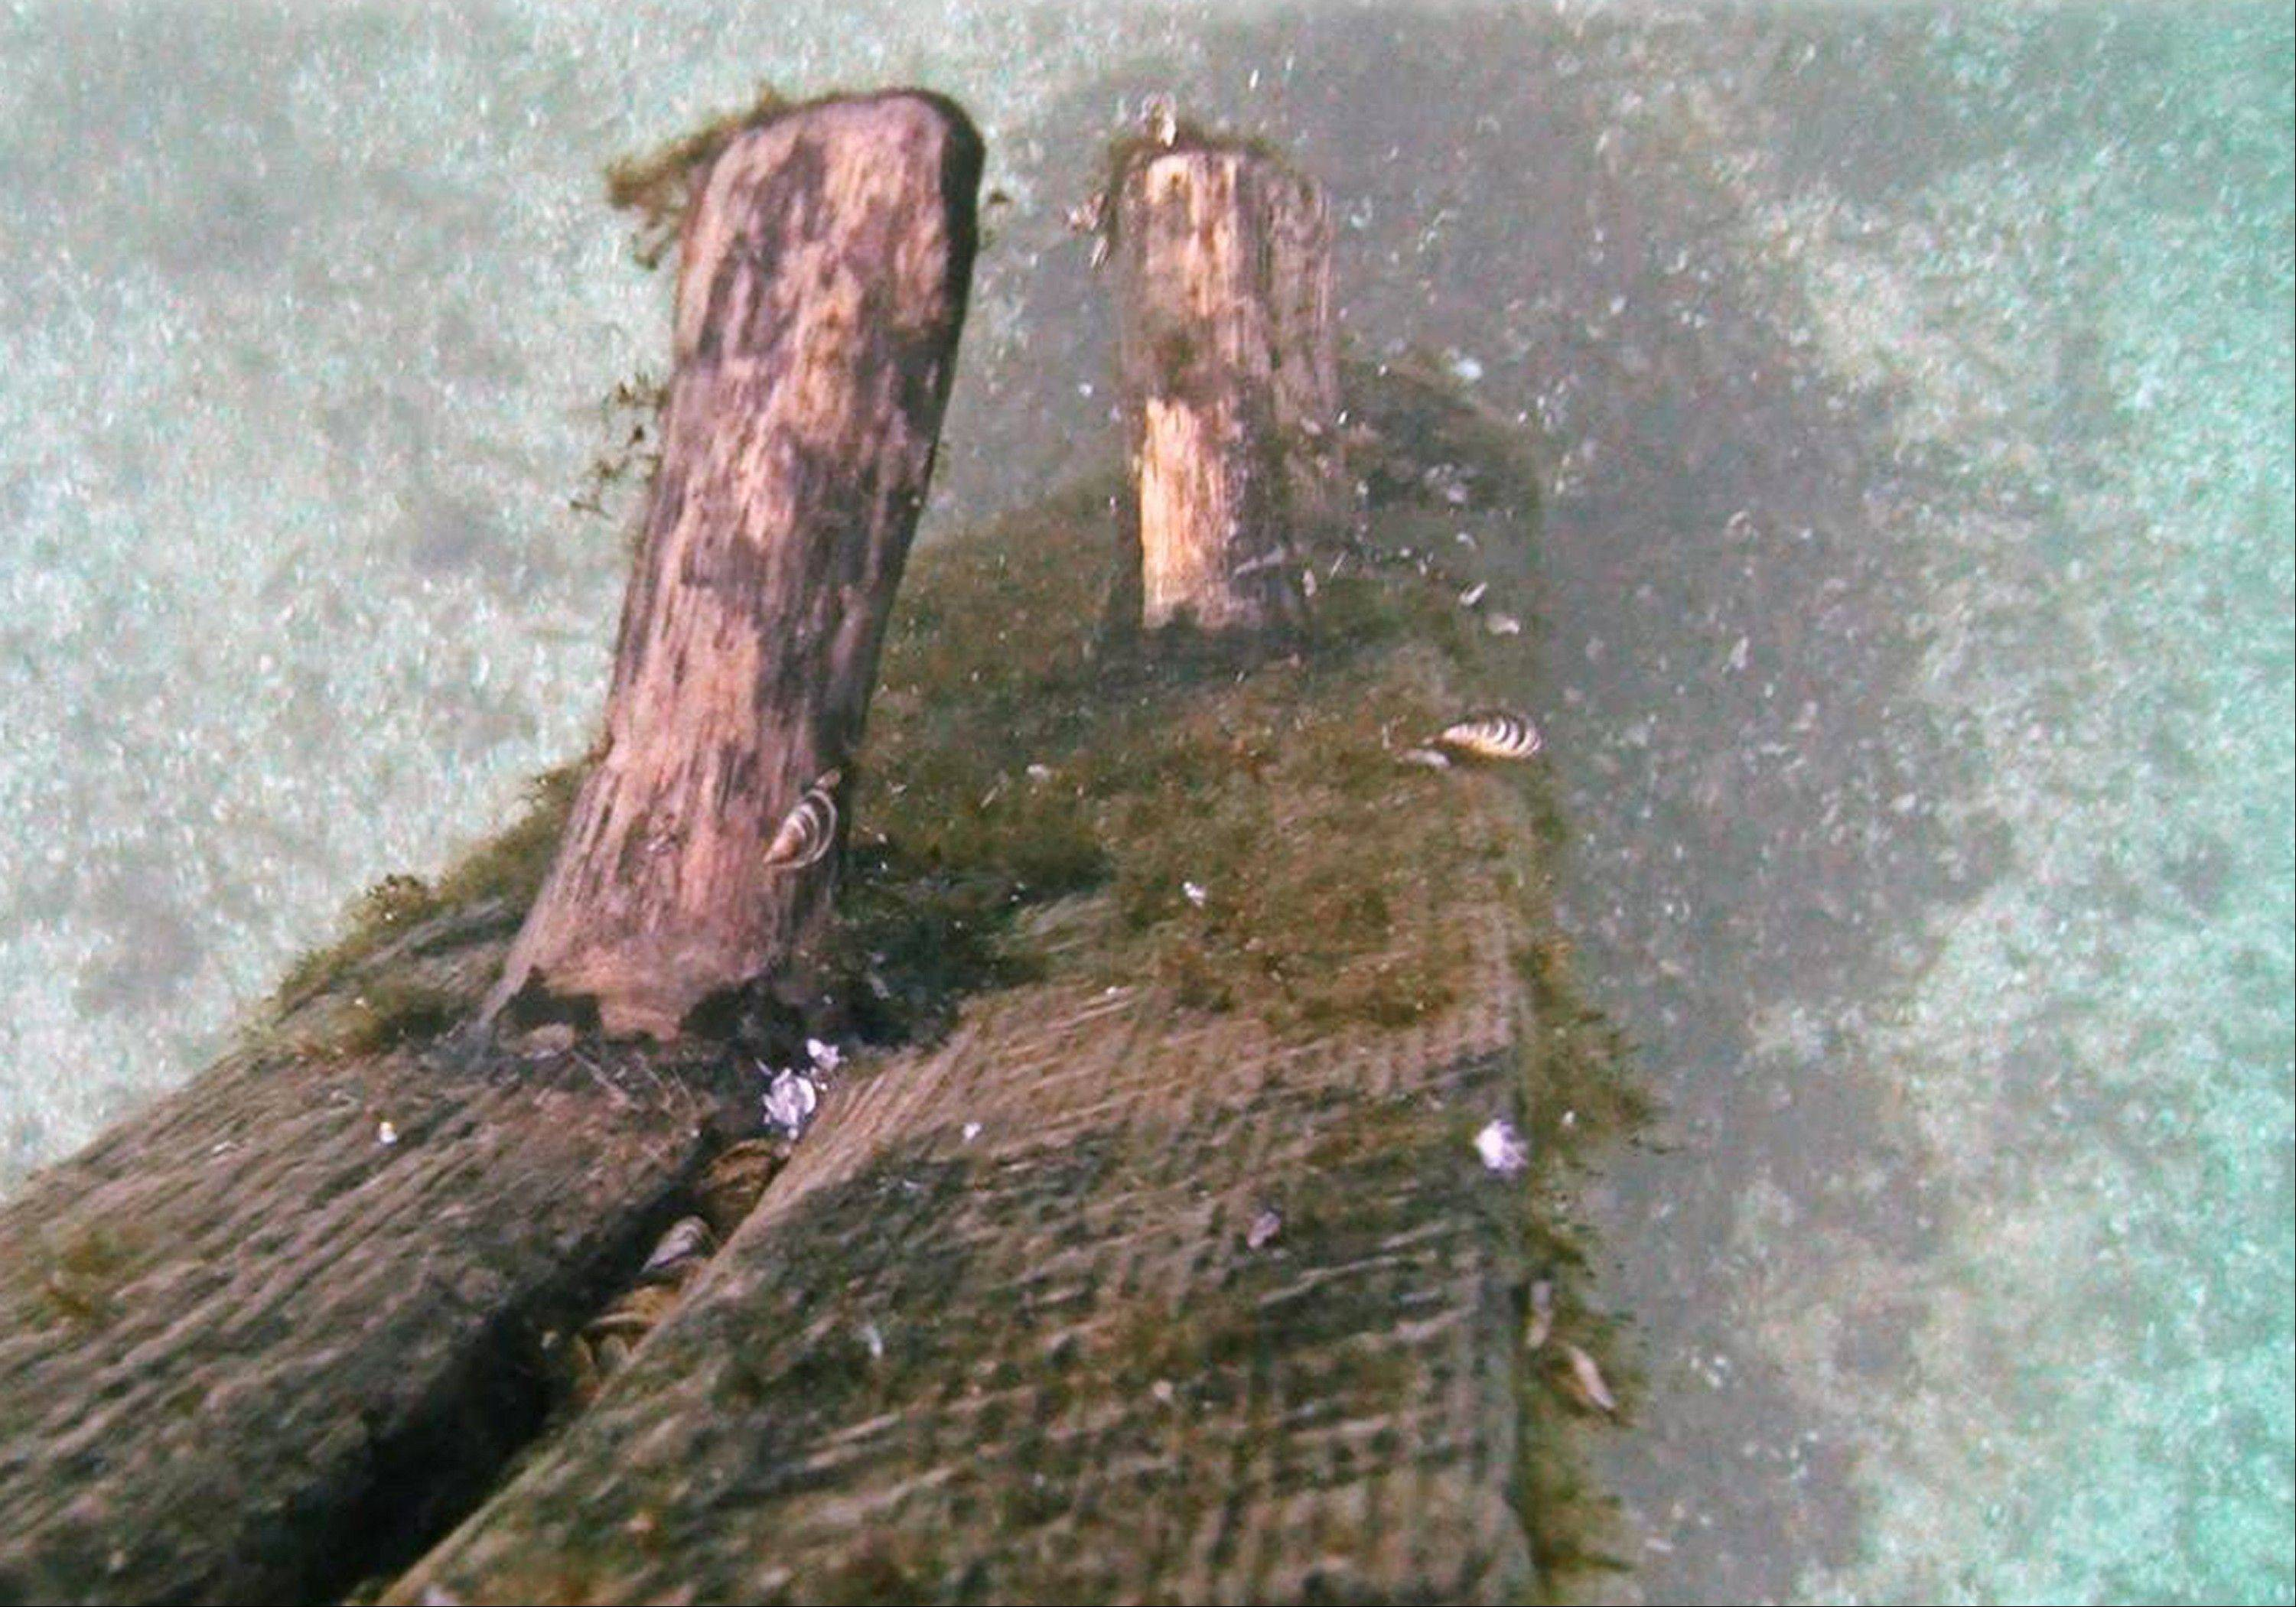 Timbers protrude from the bottom of Lake Michigan that were discovered by Steve Libert, head of Great Lakes Exploration Group, in 2001. On Saturday, Libert's crew will haul the massive timber to the radiology section of a Gaylord, Mich., hospital for a CT scan hoping to determining the age of the tree that produced it and when it was cut down.